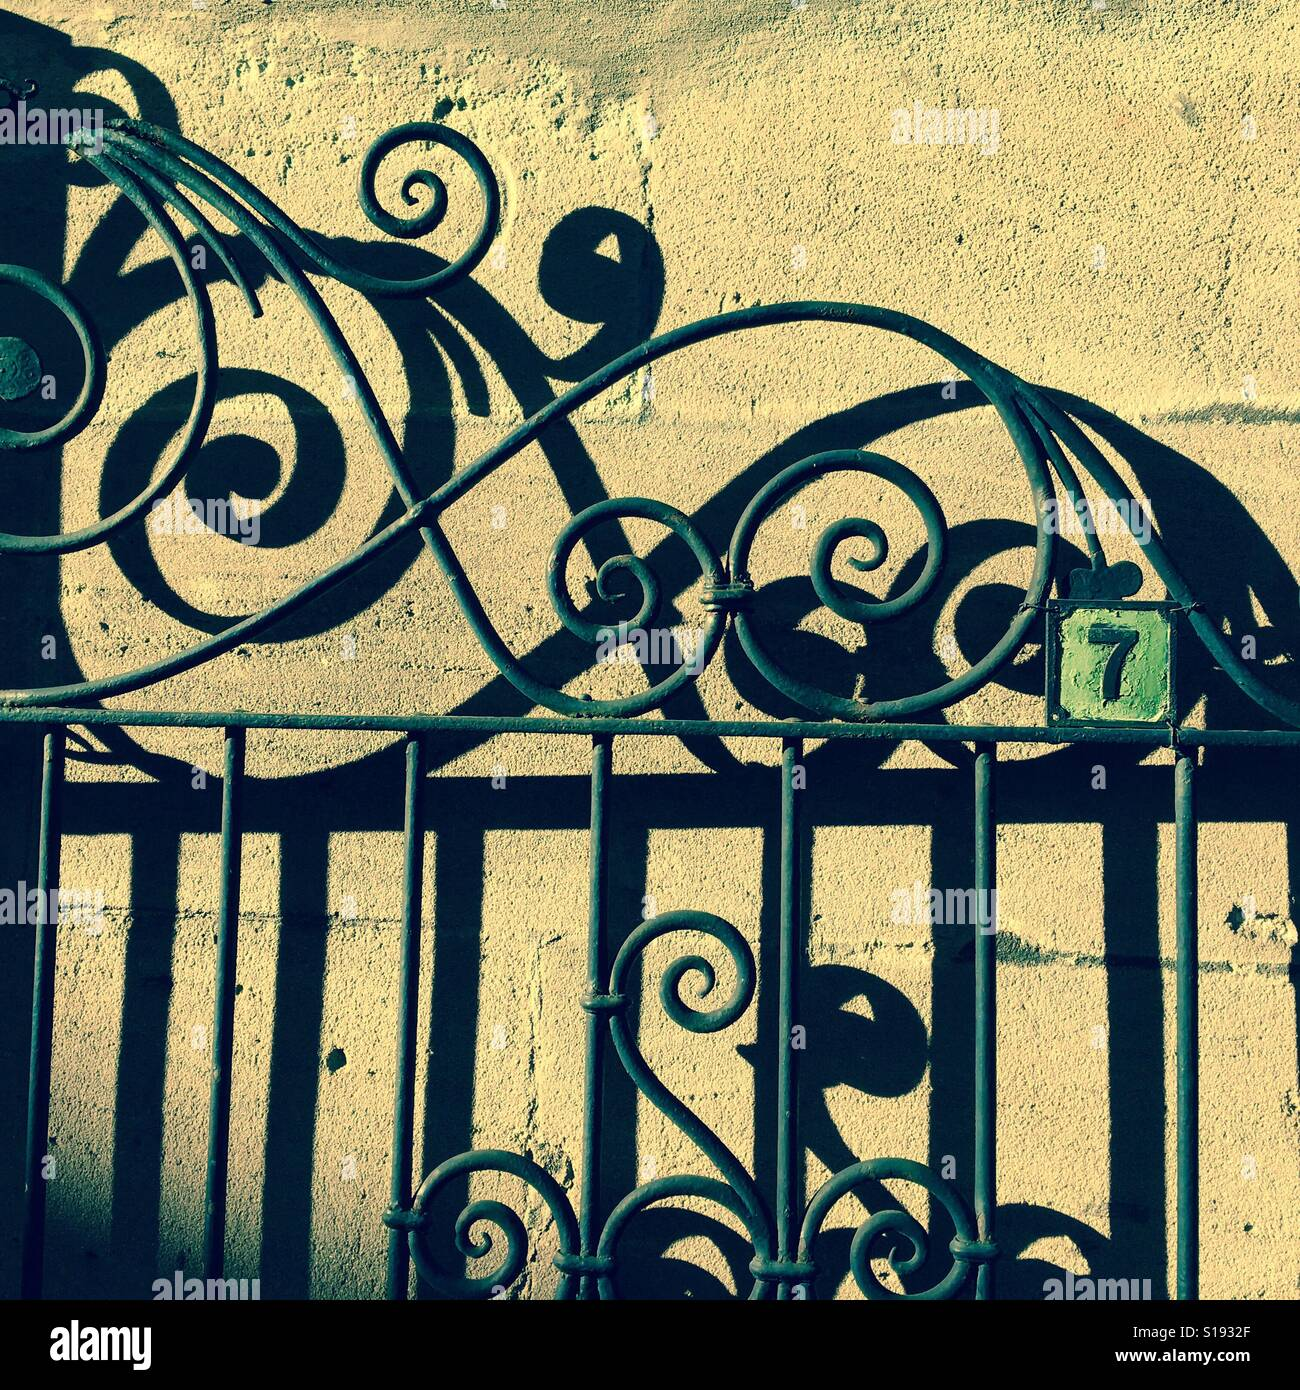 Gate Number Stock Photos & Gate Number Stock Images - Alamy